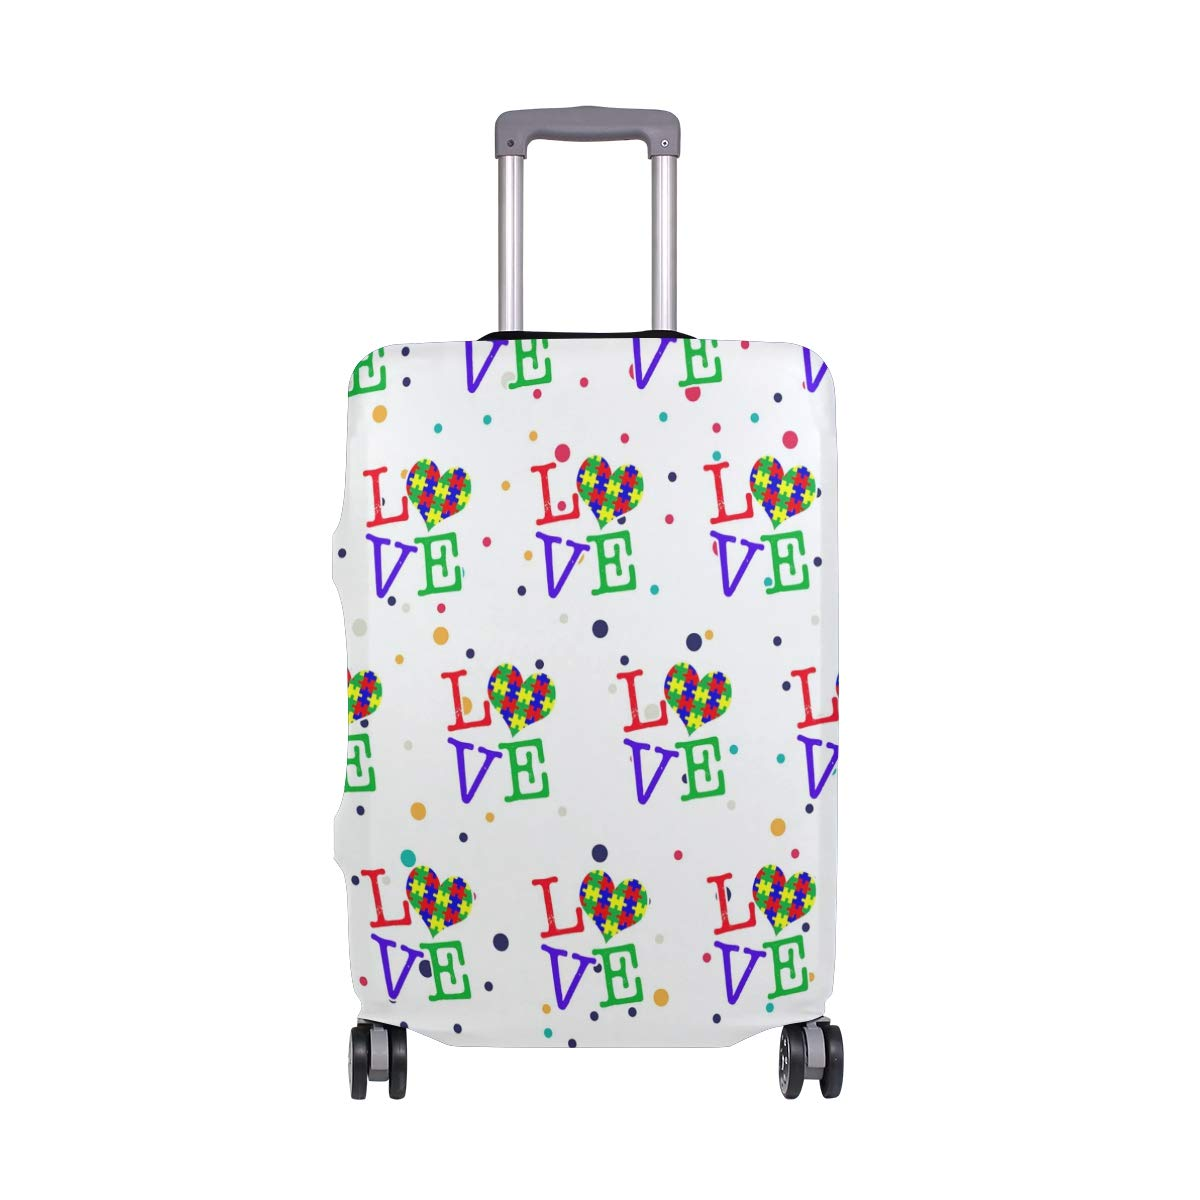 Love Heart Travel Luggage Cover - Suitcase Protector HLive Spandex Dust Proof Covers with Zipper, Fits 18-32 inch